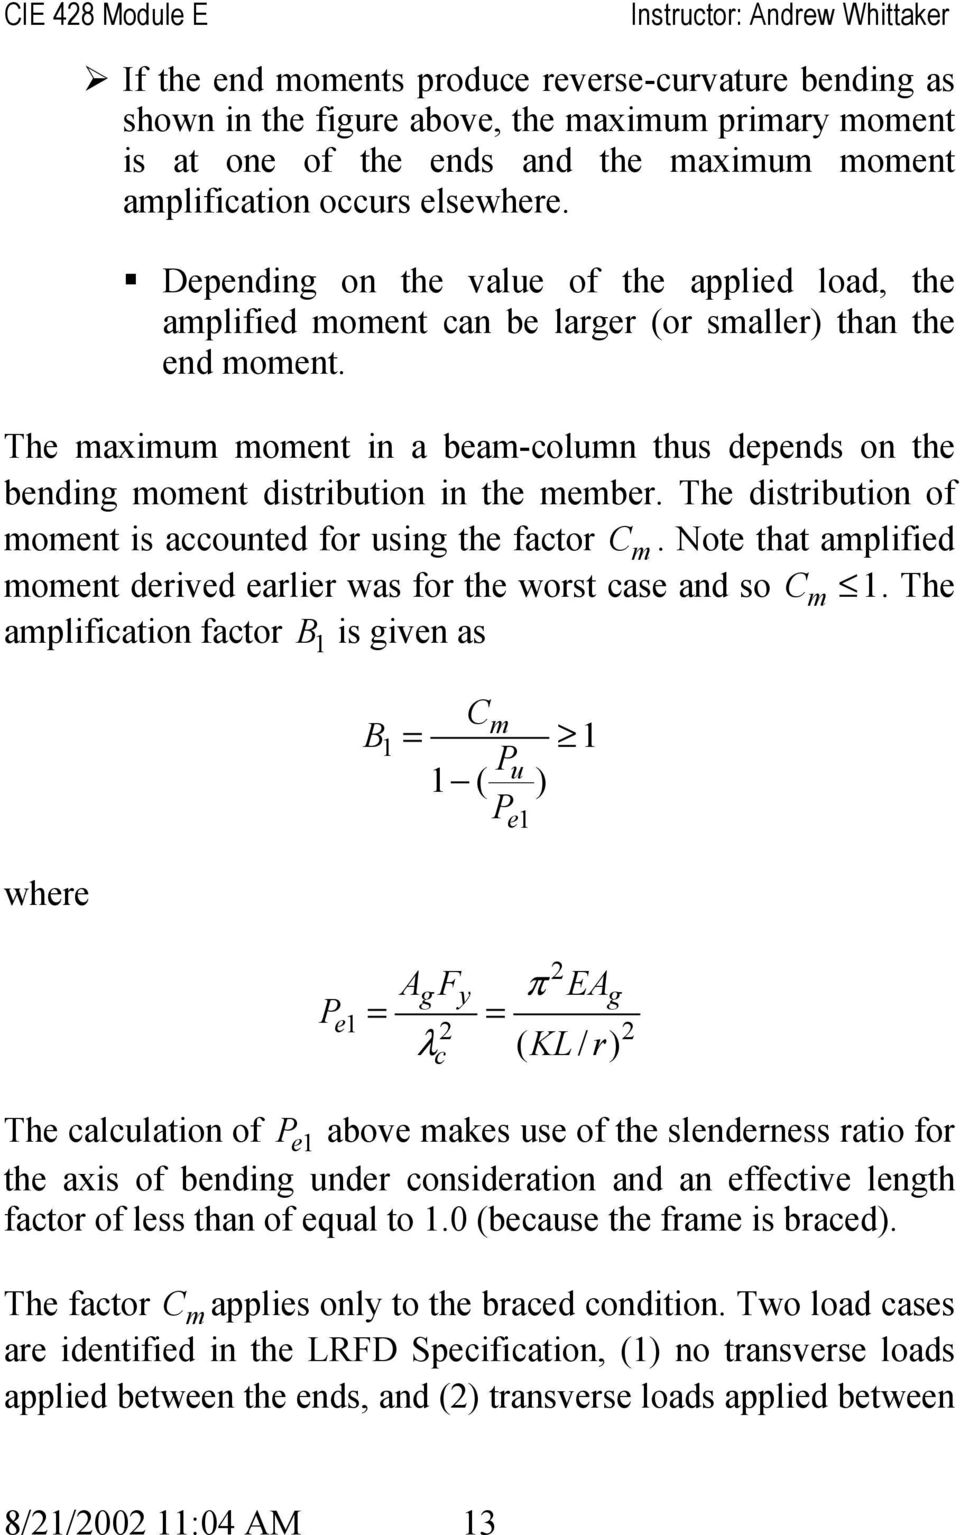 The maximum moment in a beam-column thus depends on the bending moment distribution in the member. The distribution of moment is accounted for using the factor C m.